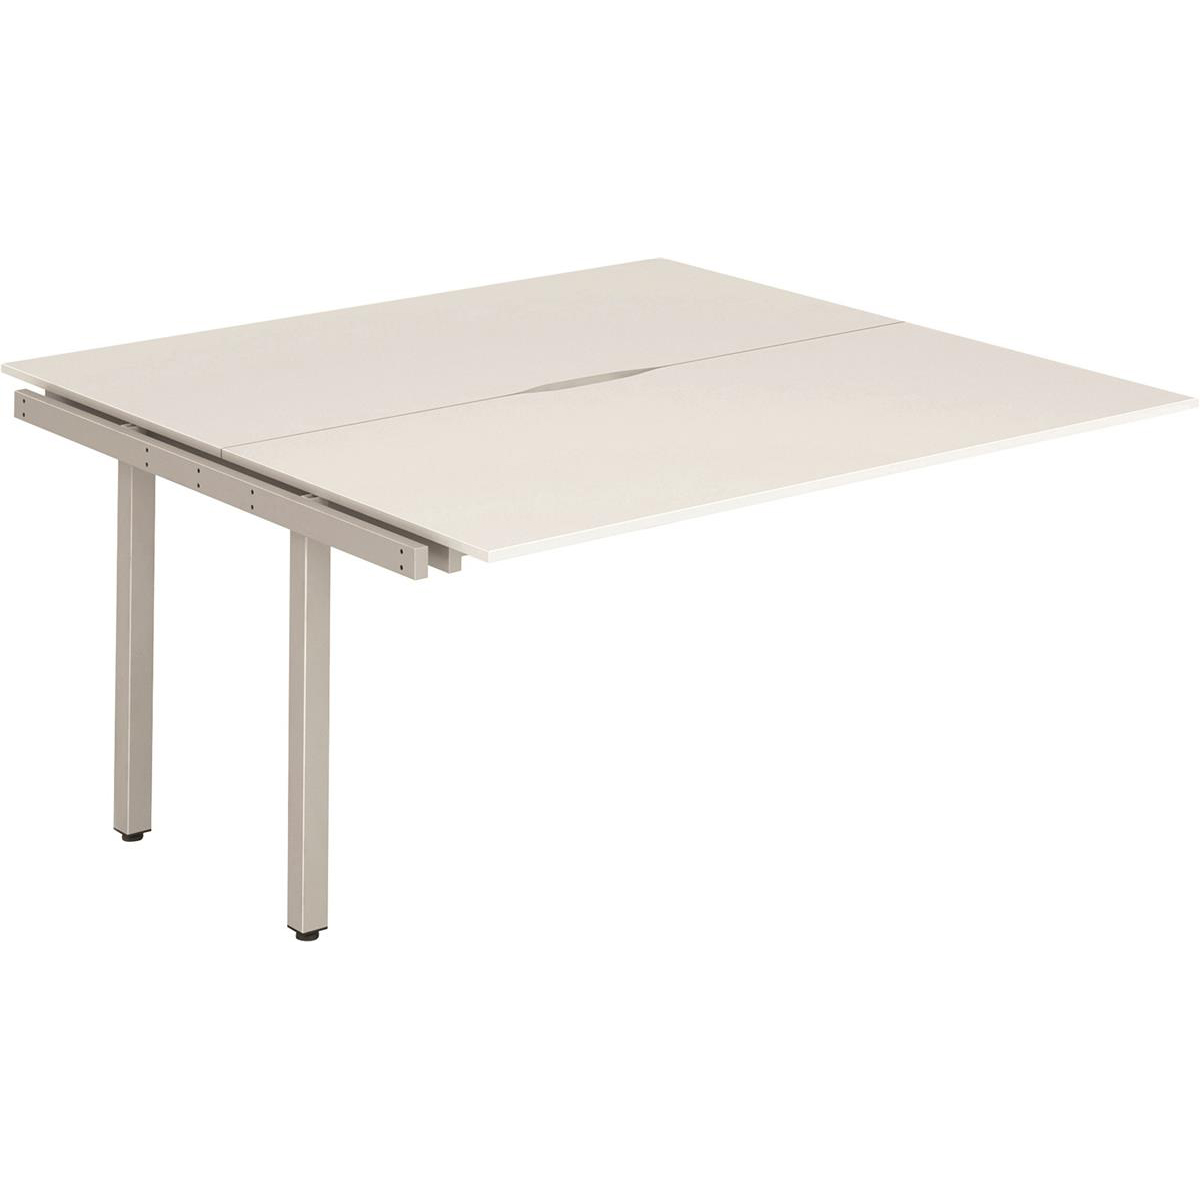 Trexus Bench Desk Double Extension Back to Back Configuration Silver Leg 1600x1600mm White Ref BE208